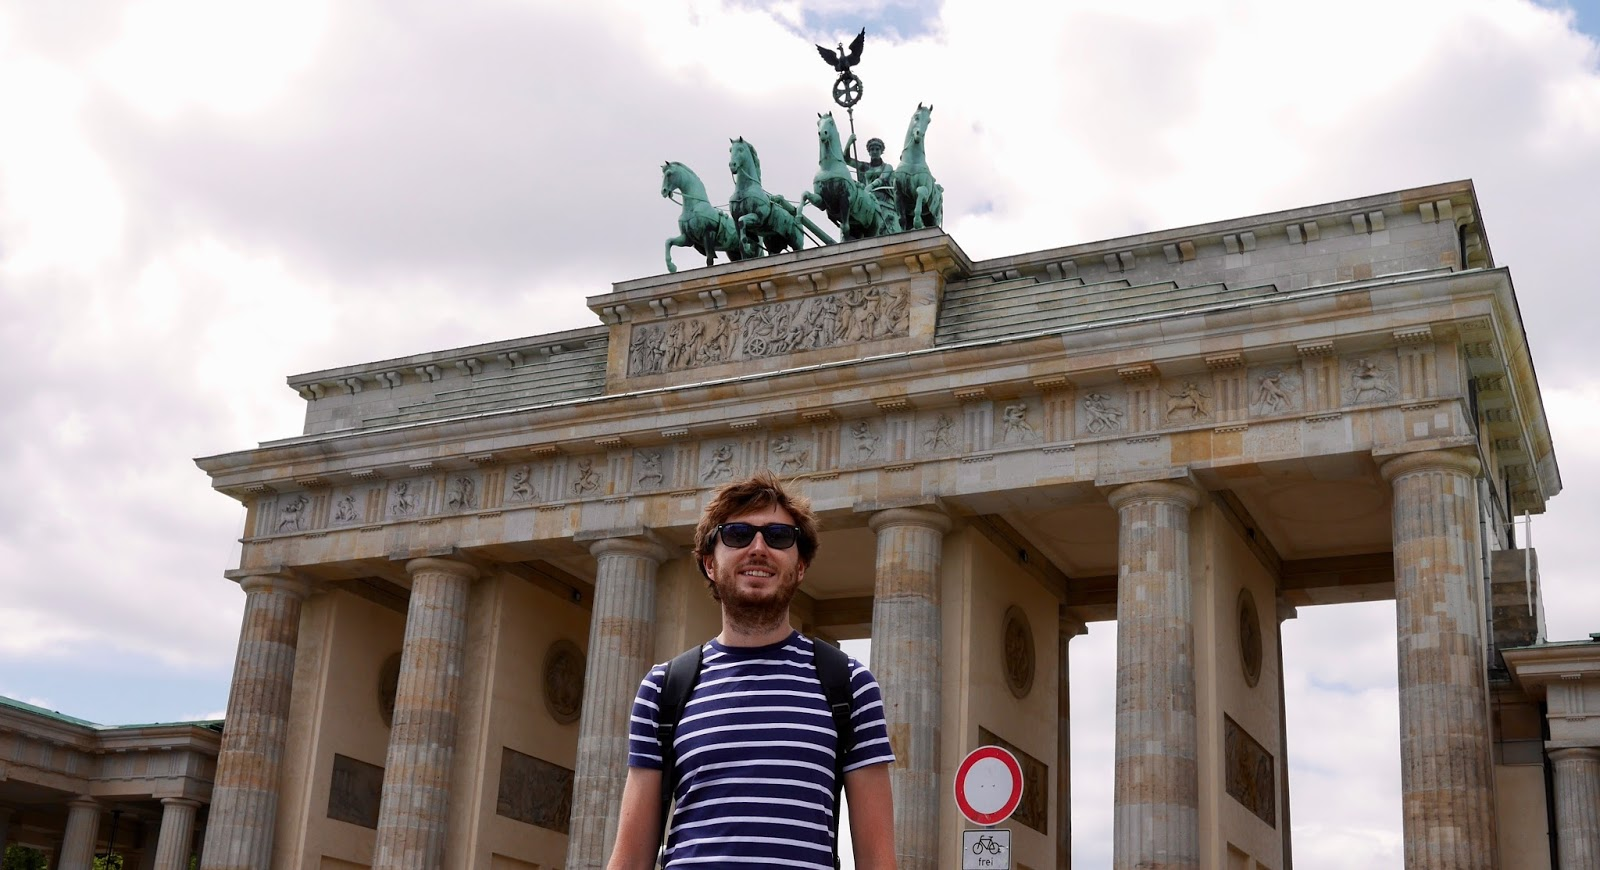 Cal Mc standing at the Brandenburg Gates, by www.CalMcTravels.com. Cal McTravels